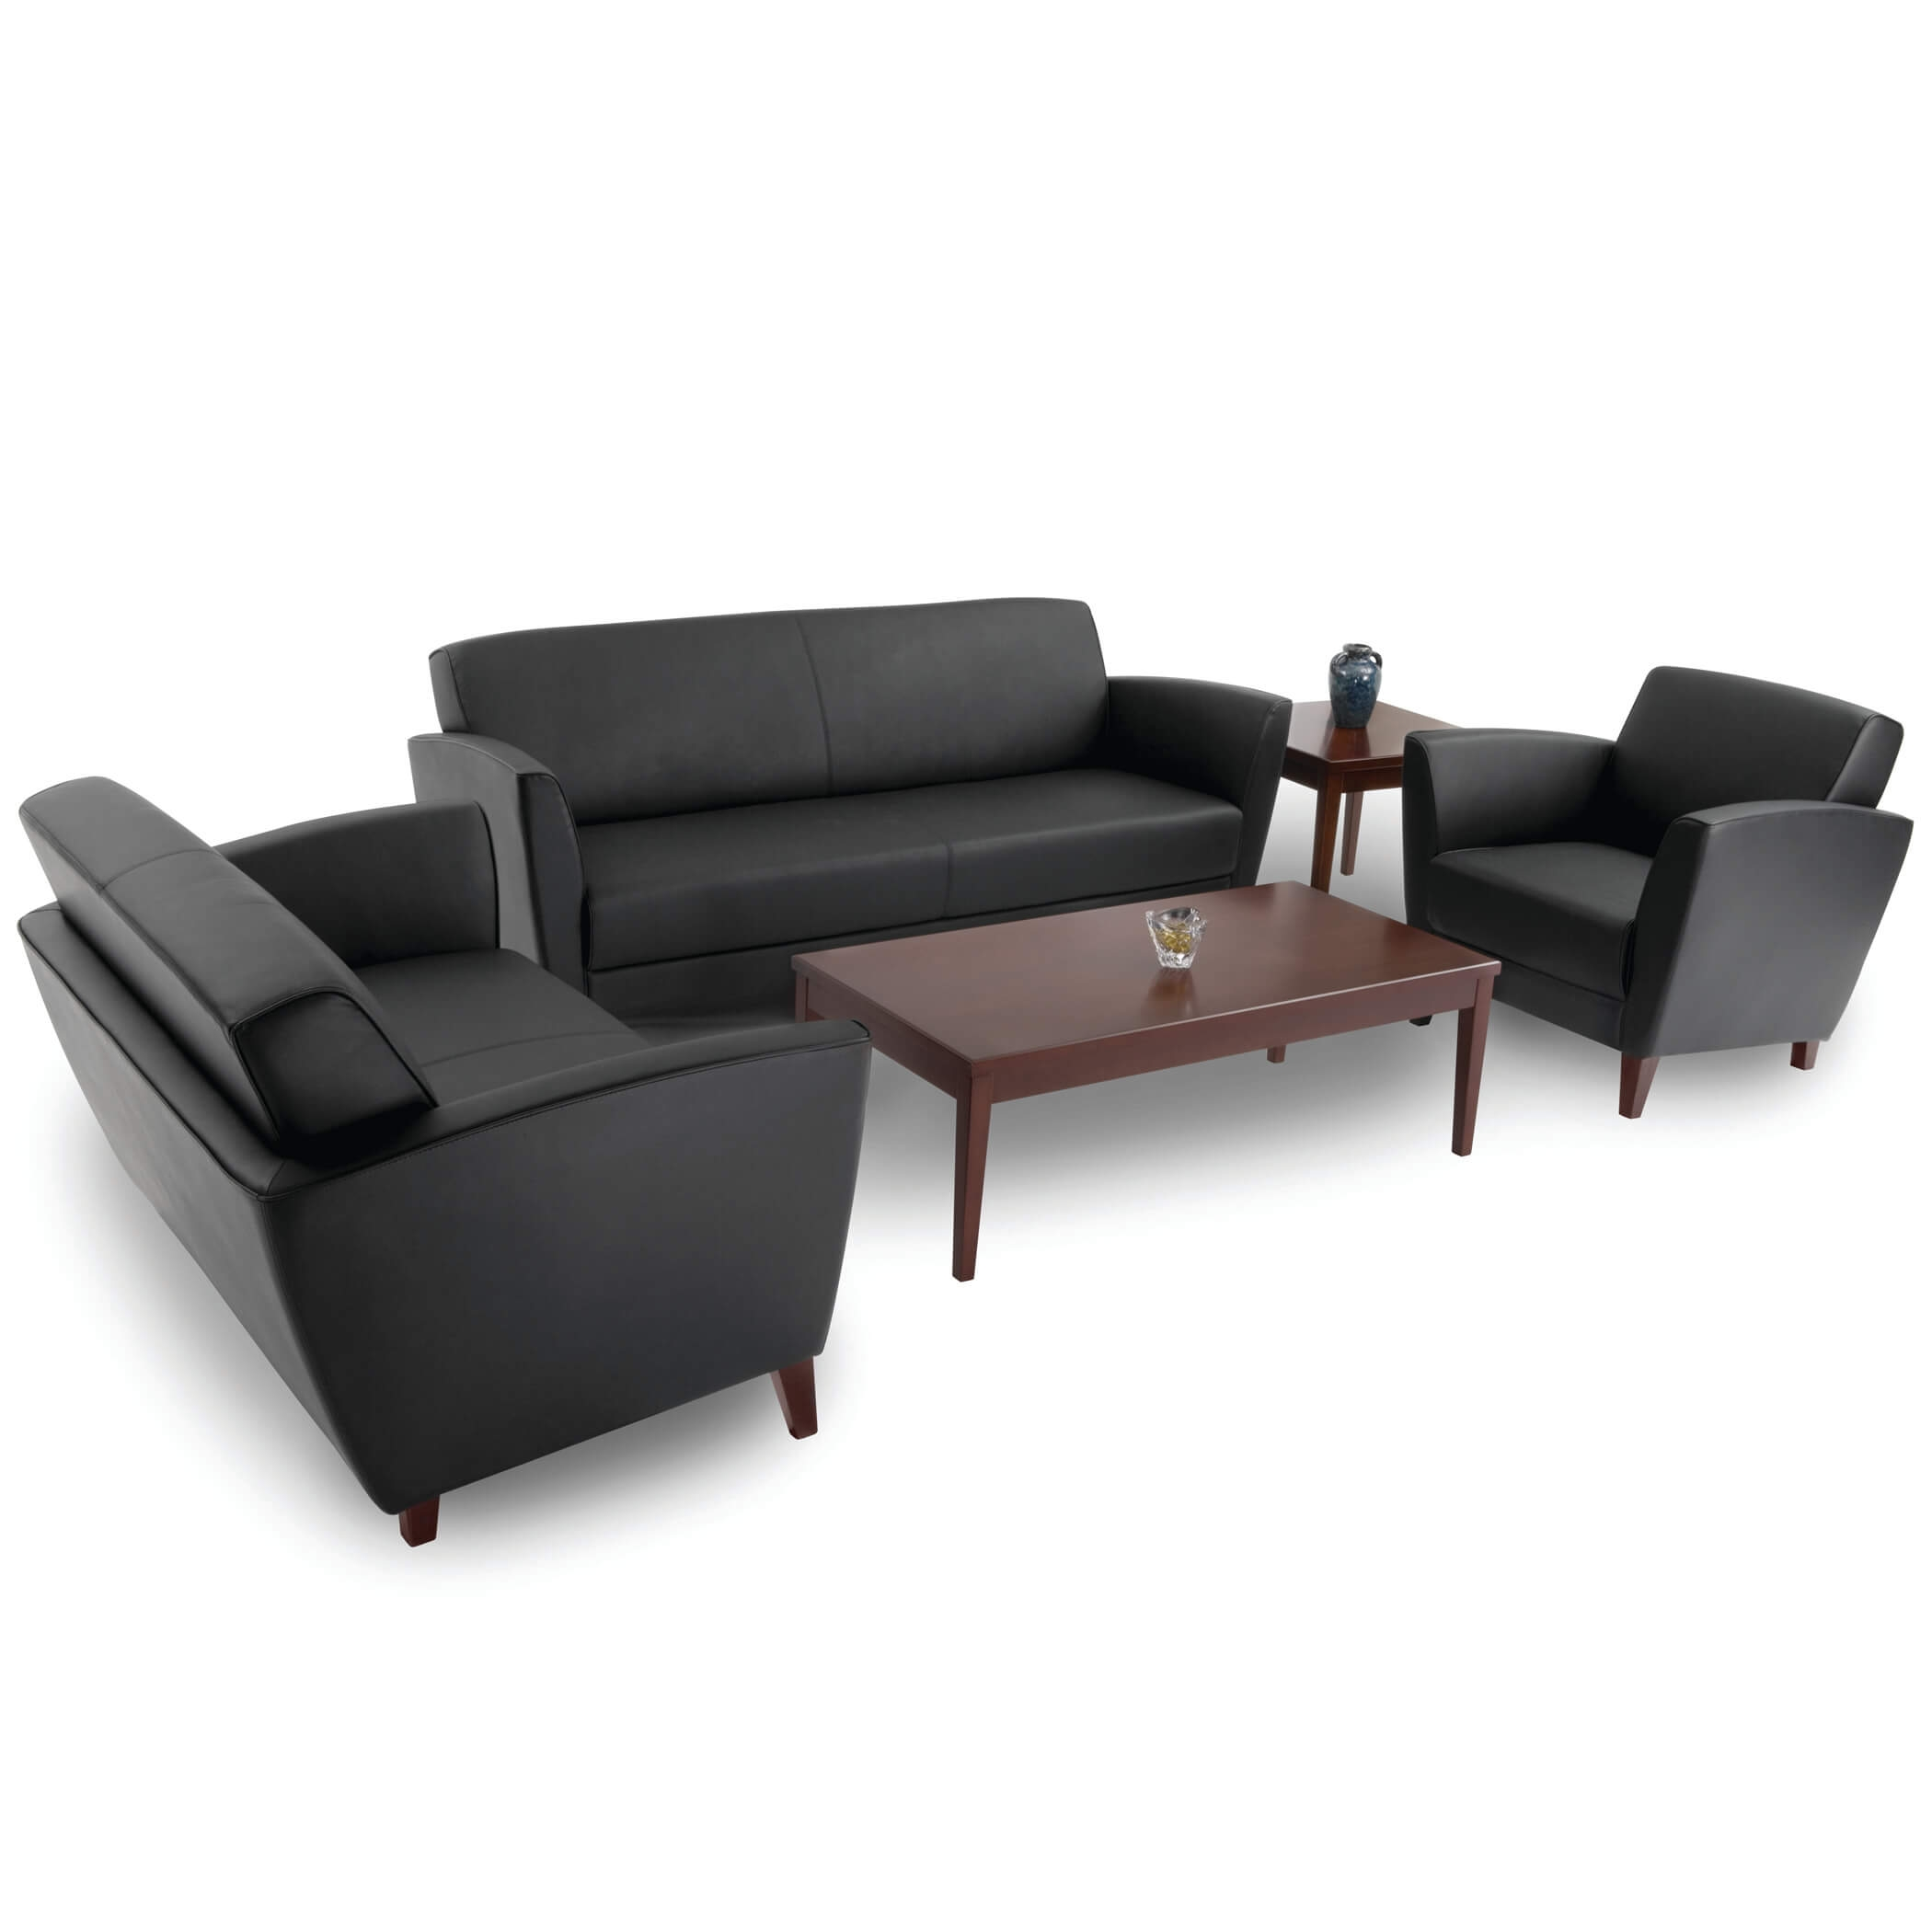 Modern guest chairs set